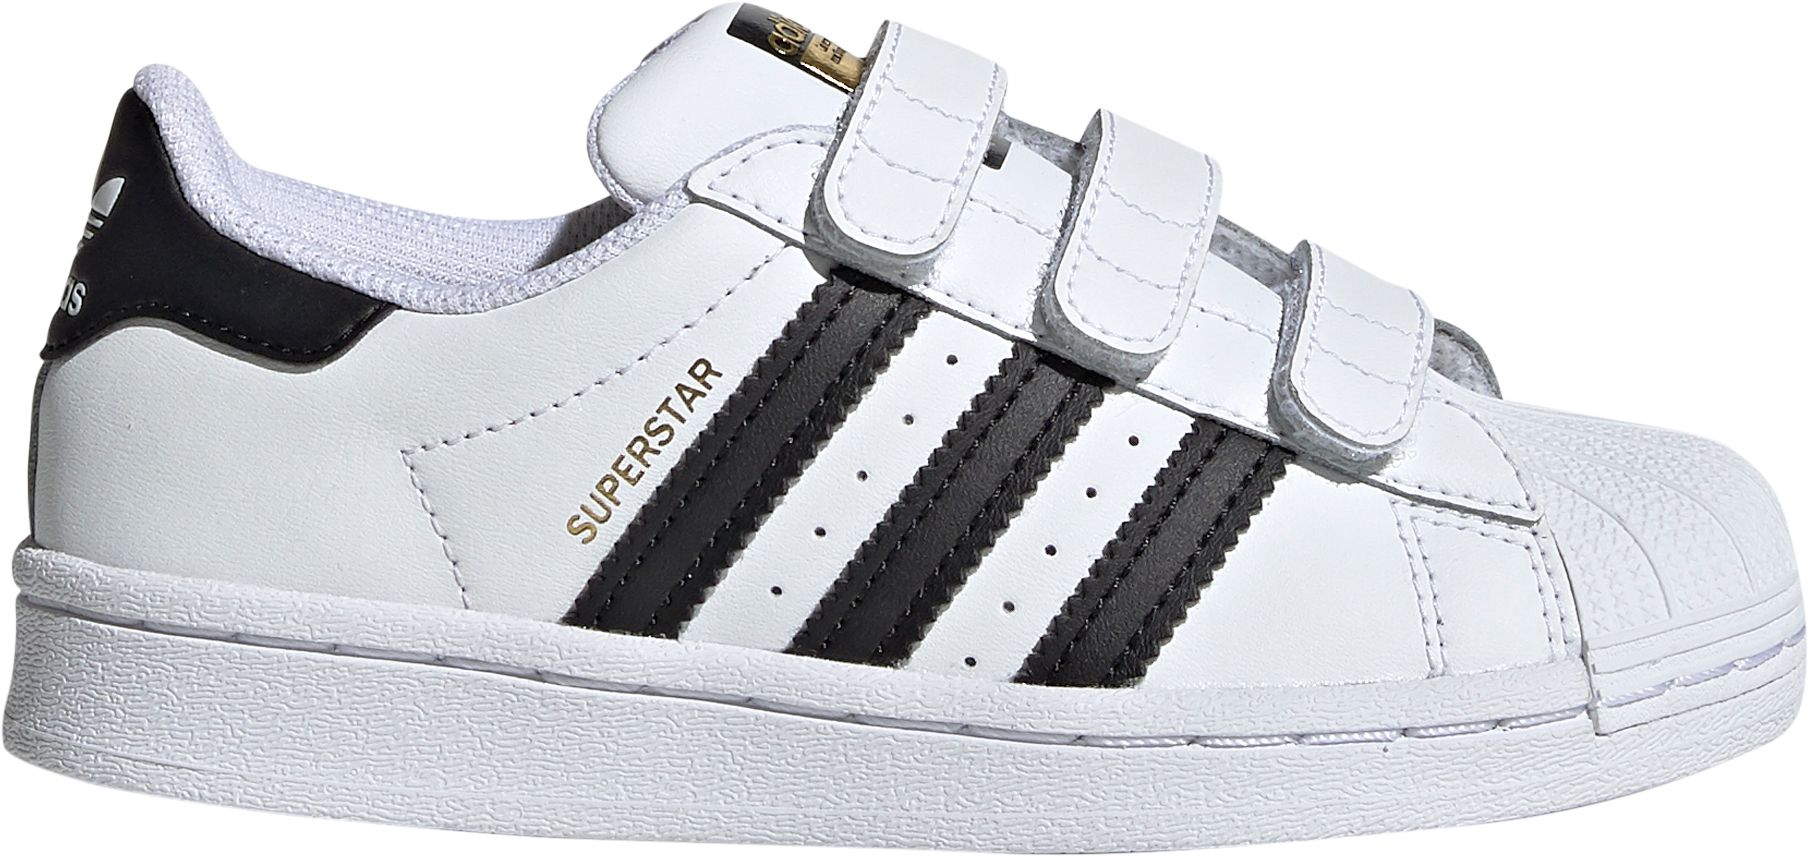 adidas shoes 78759 county clerk 600950